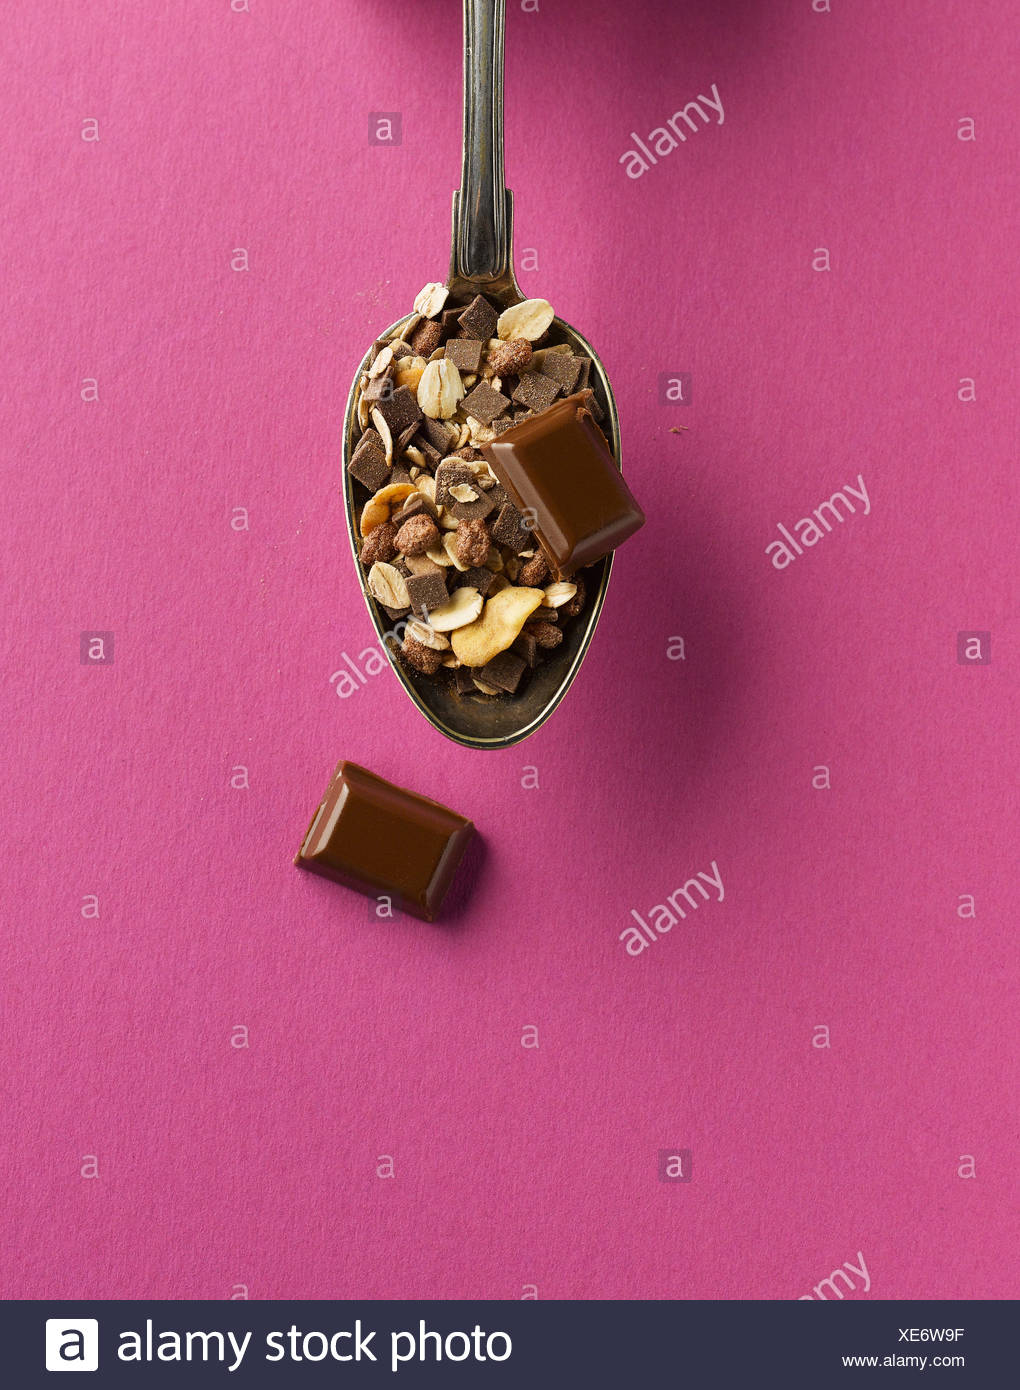 Cereal and chocolate in spoon on pink background - Stock Image